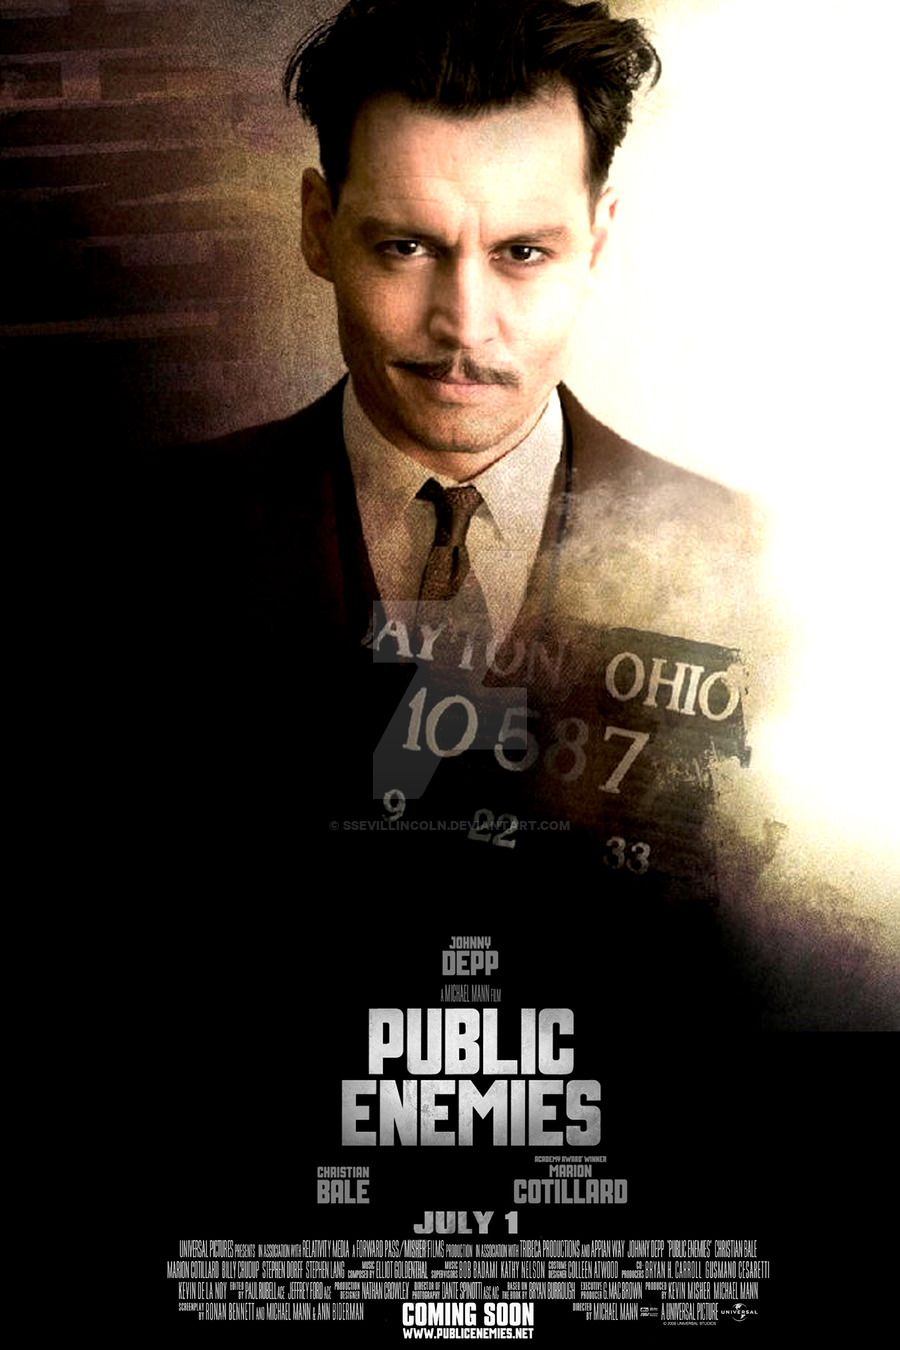 Public Enemies 2009 The Feds Try To Take Down Notorious American Gangsters John Dillinger Baby Face Nelson A The Hollywood Vampires Johnny Depp Public Enemy